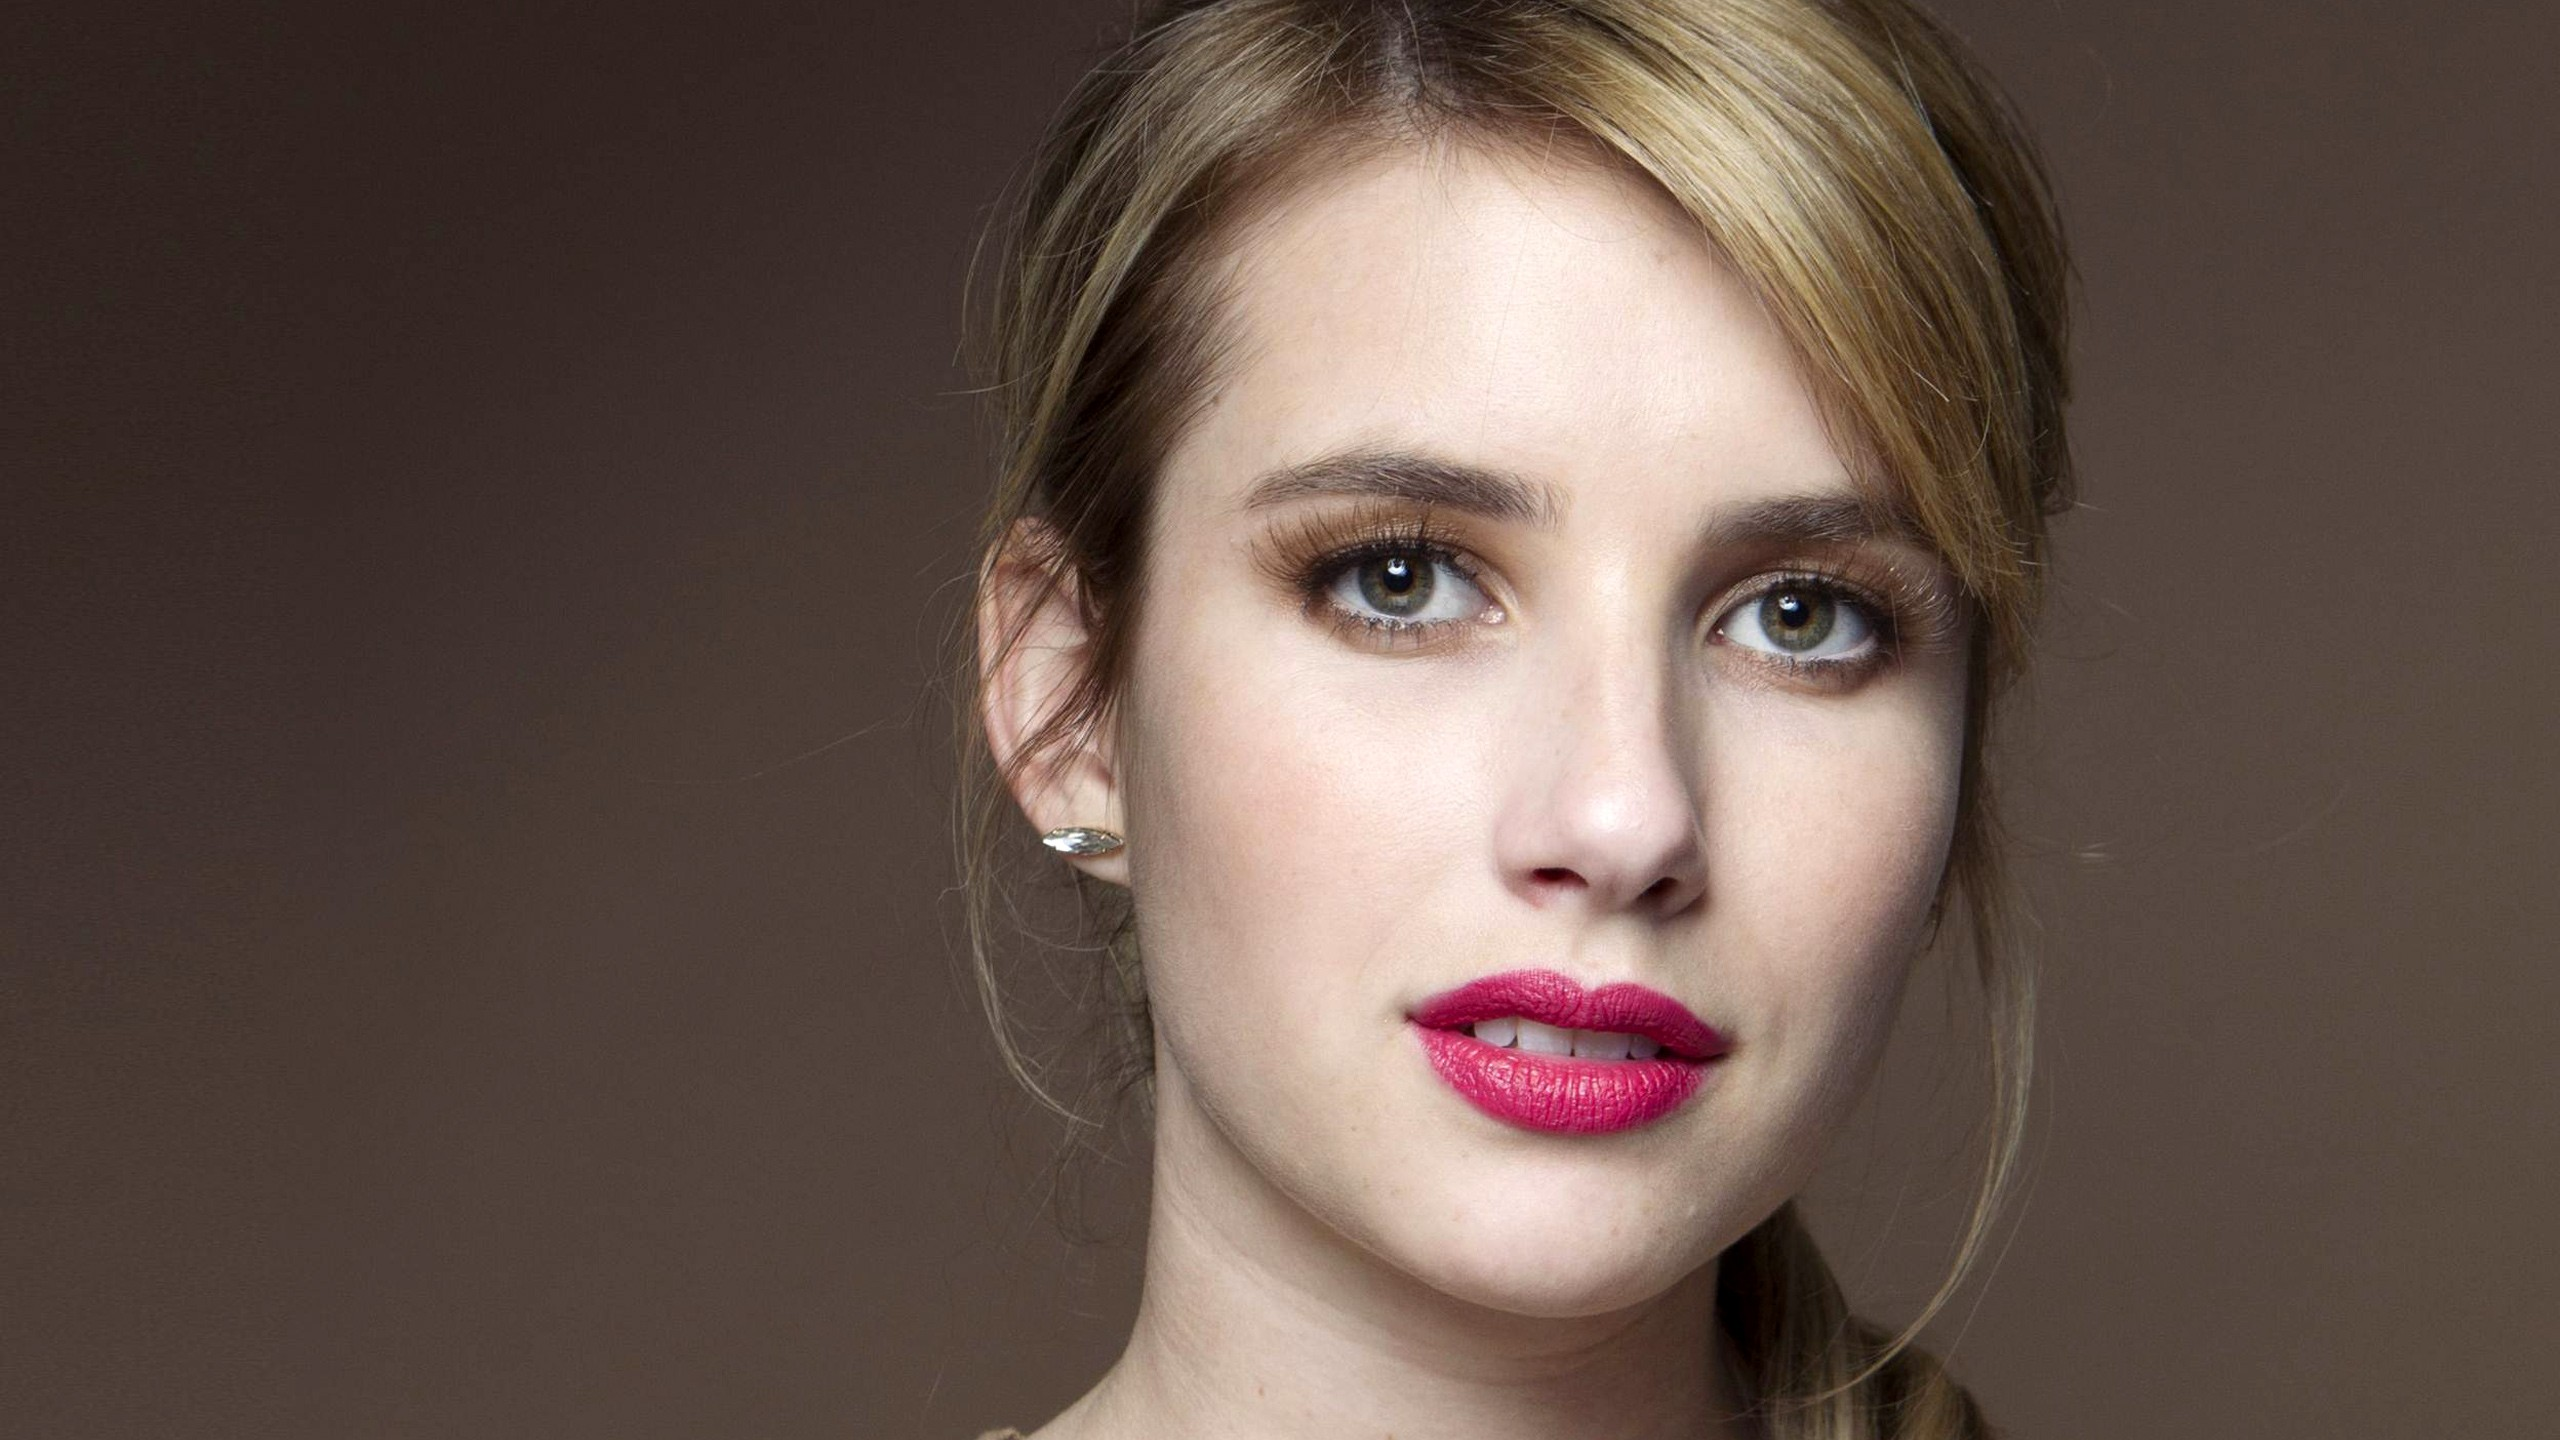 3d Wallpaper For Iphone 6s Plus Emma Roberts Beautiful Wallpapers Hd Wallpapers Id 19704